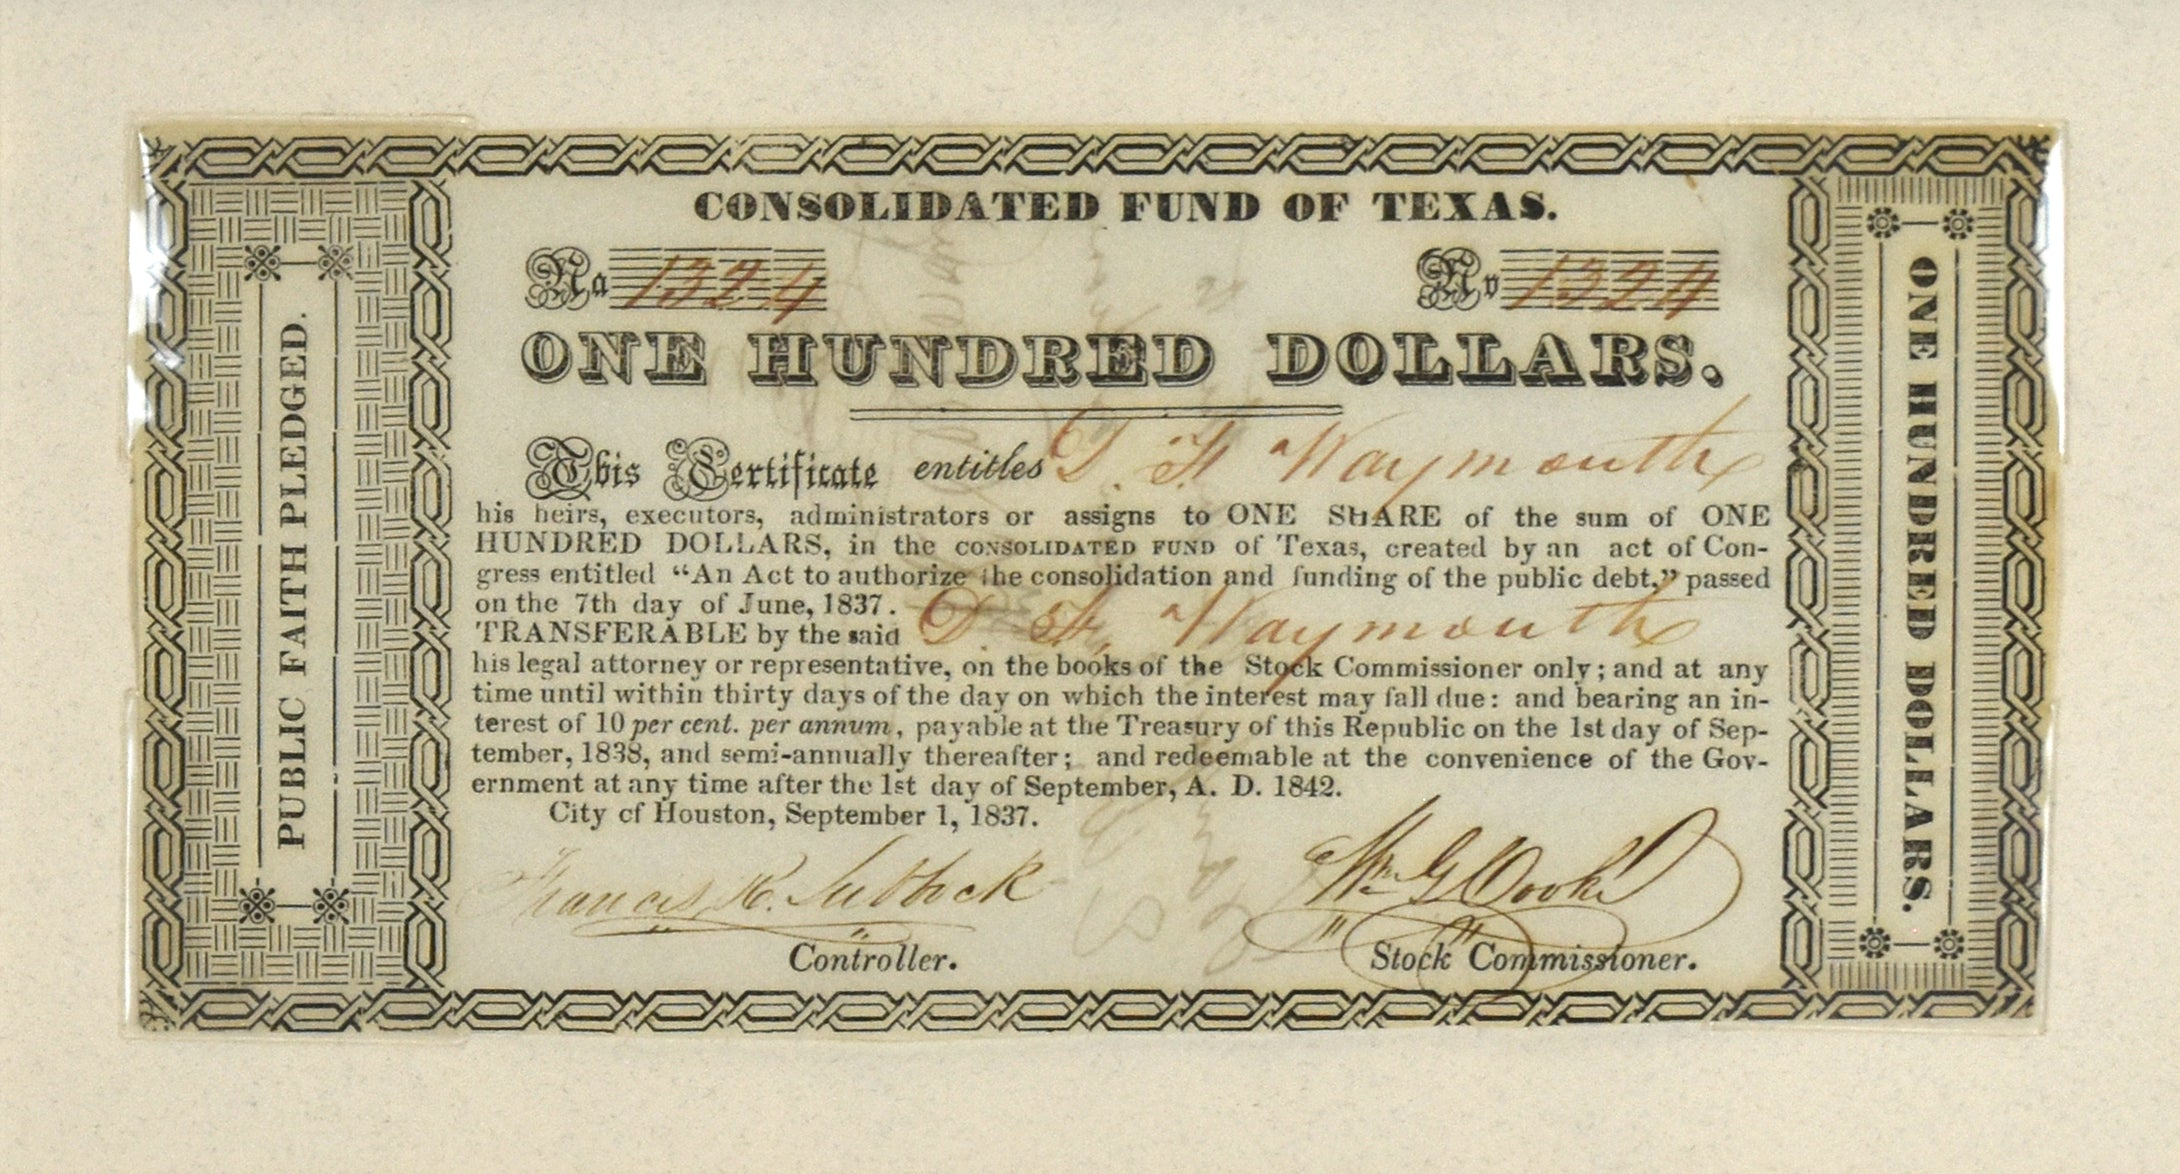 One Hundred Dollars: Consolidated Fund of Texas 1837